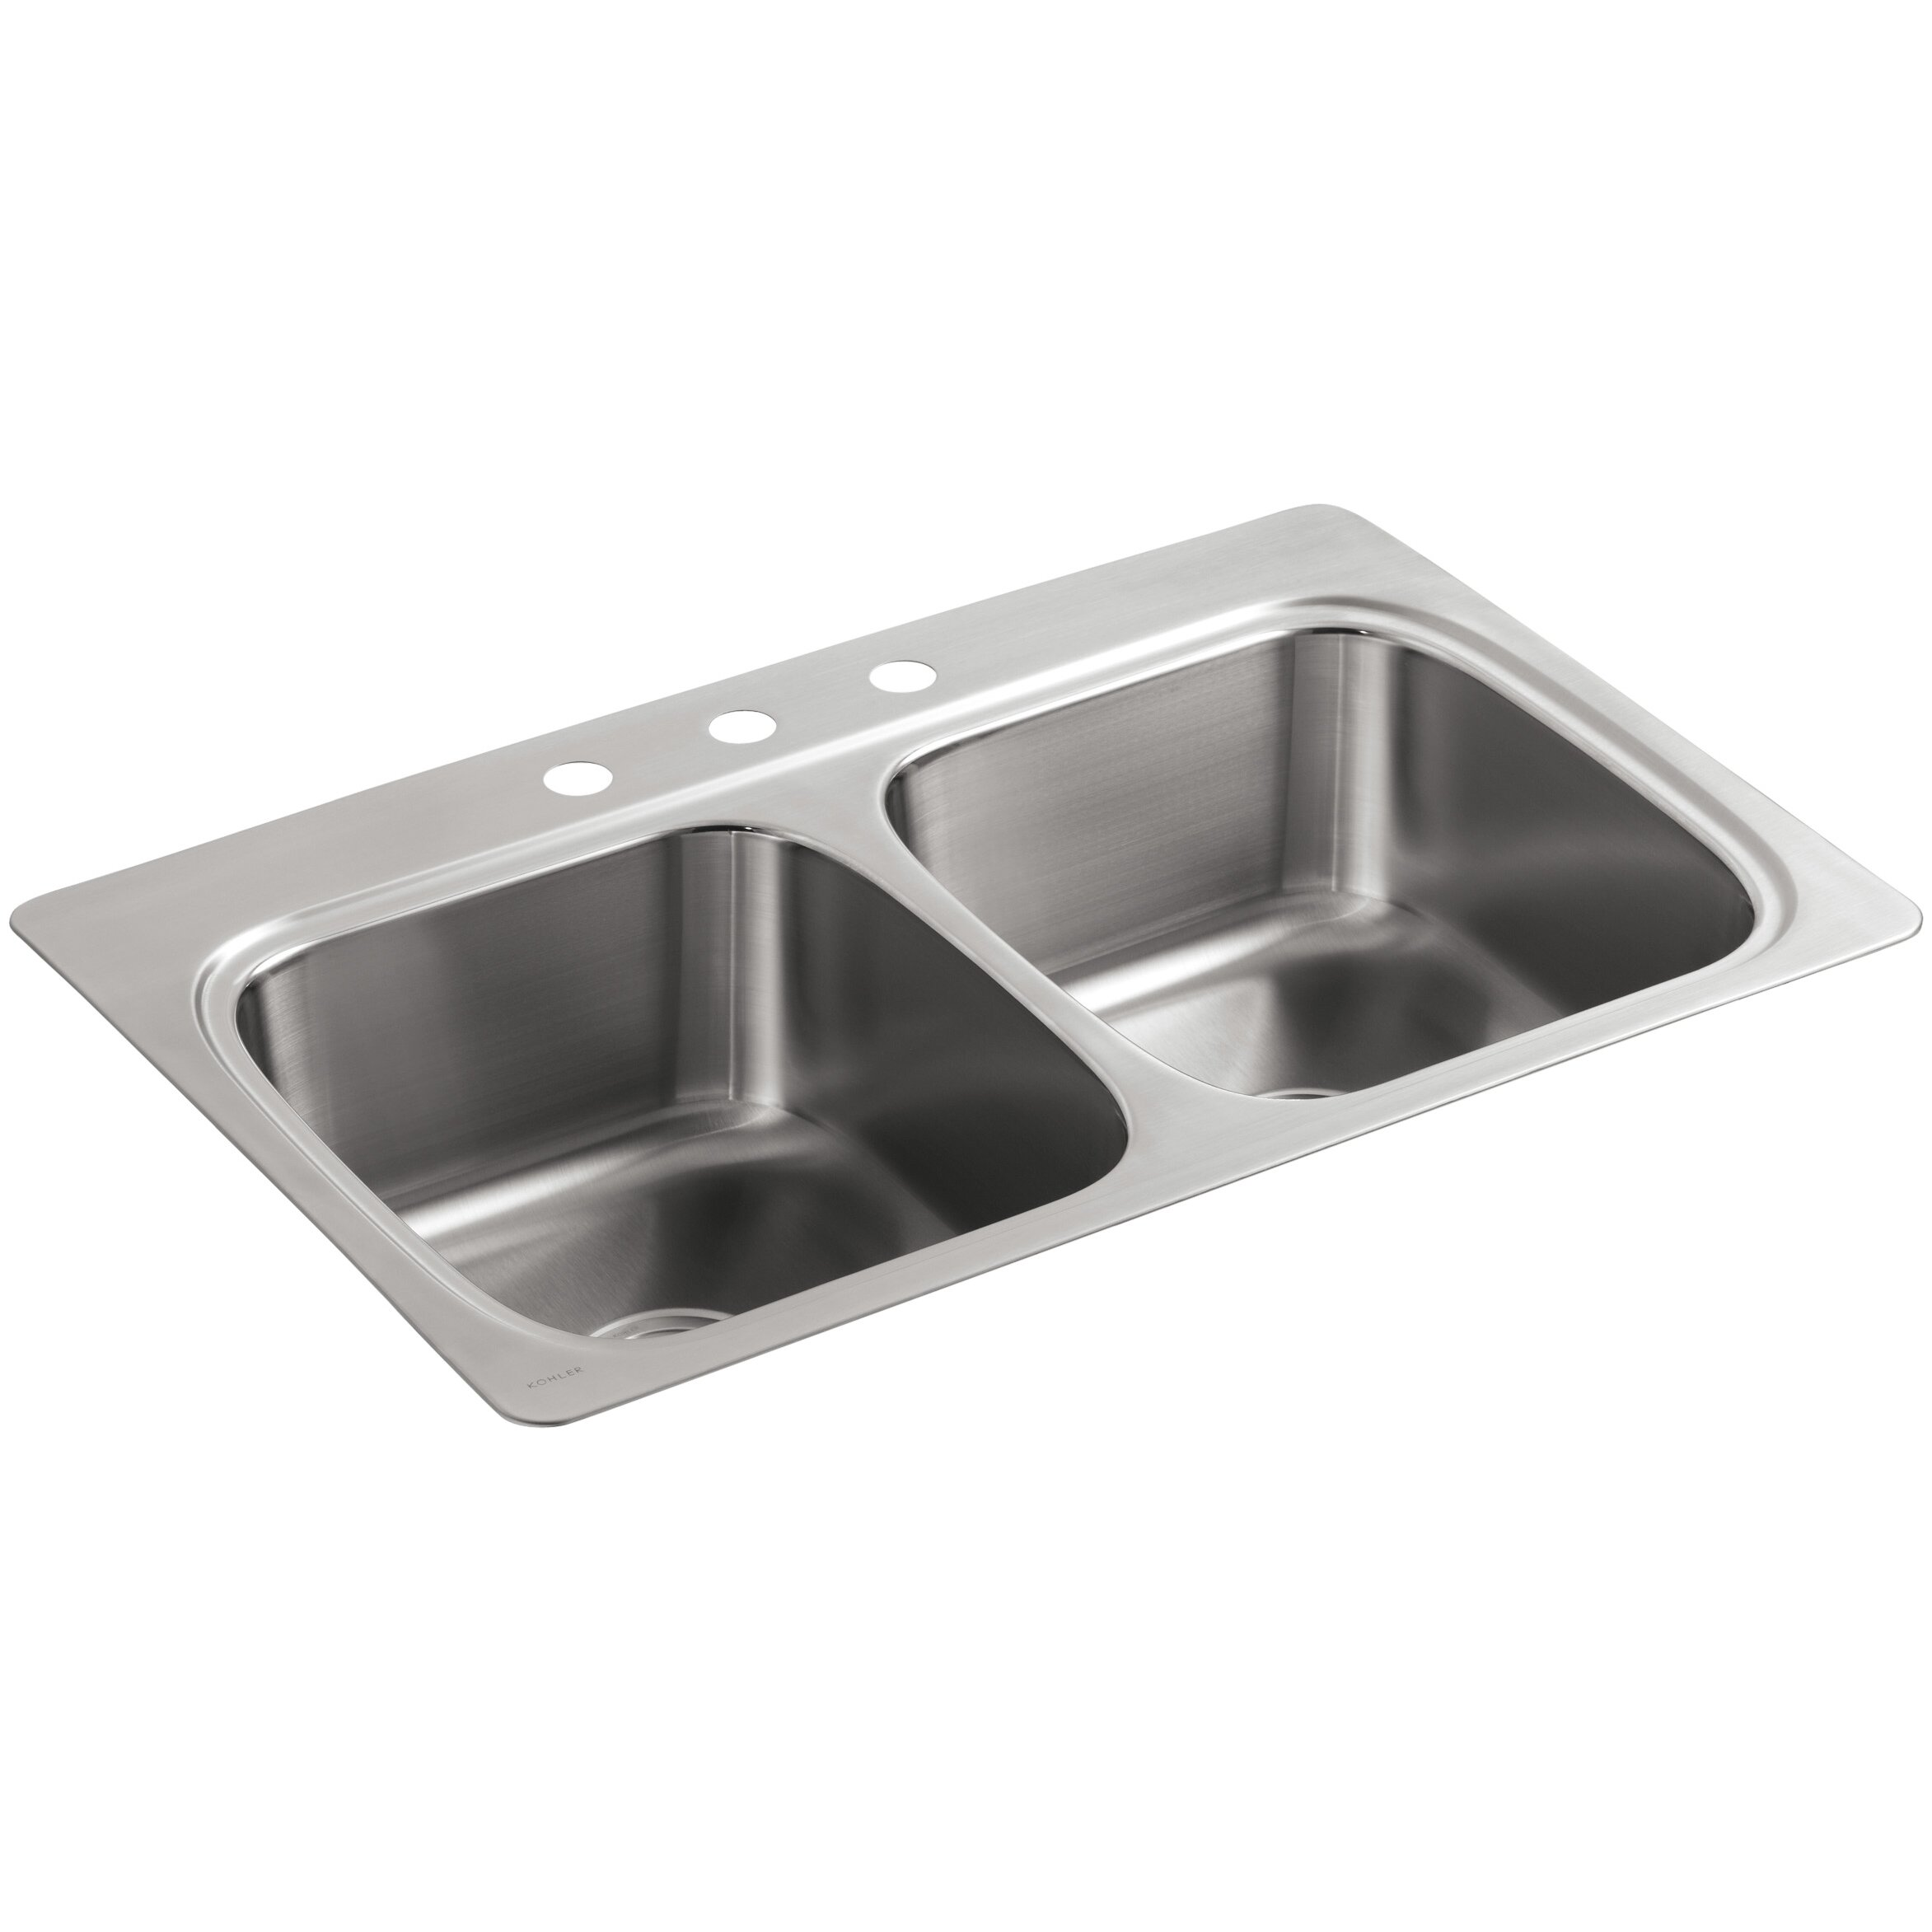 Kohler verse top mount double equal bowl kitchen sink with for Best faucet for kitchen sink